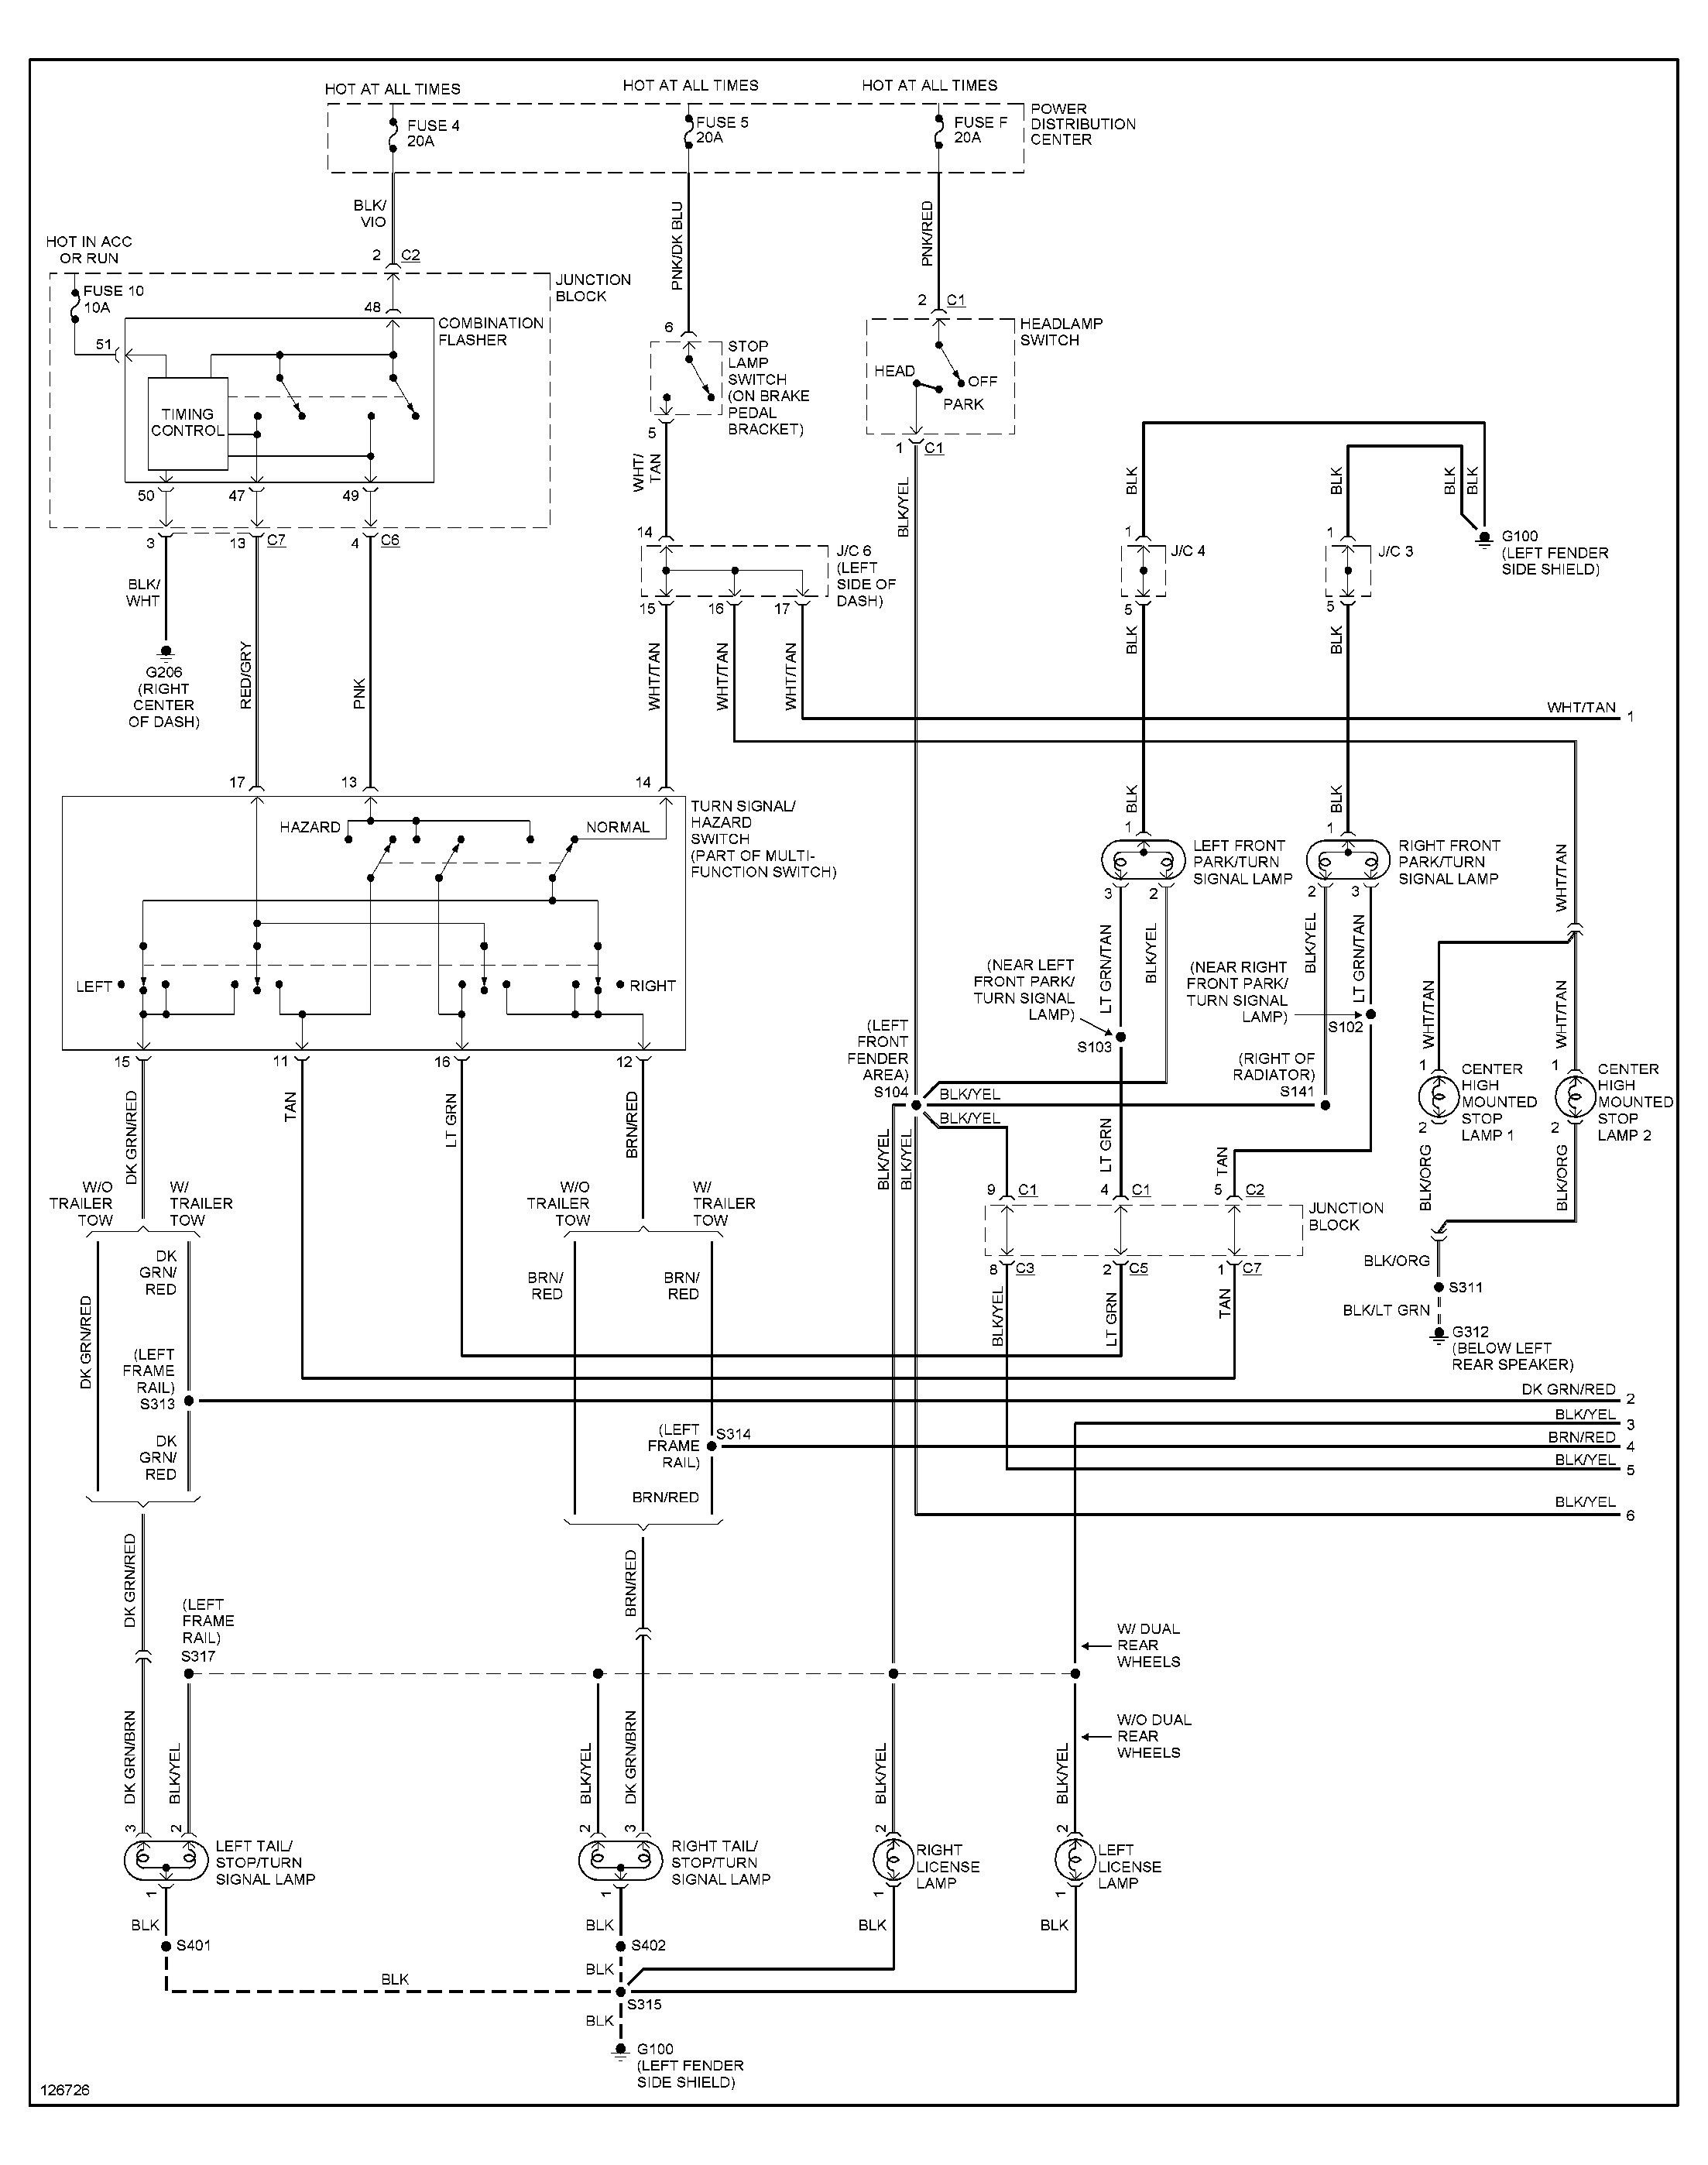 BOW 40] 40 Dodge Ram Tail Lights Wiring Diagram   boards ...